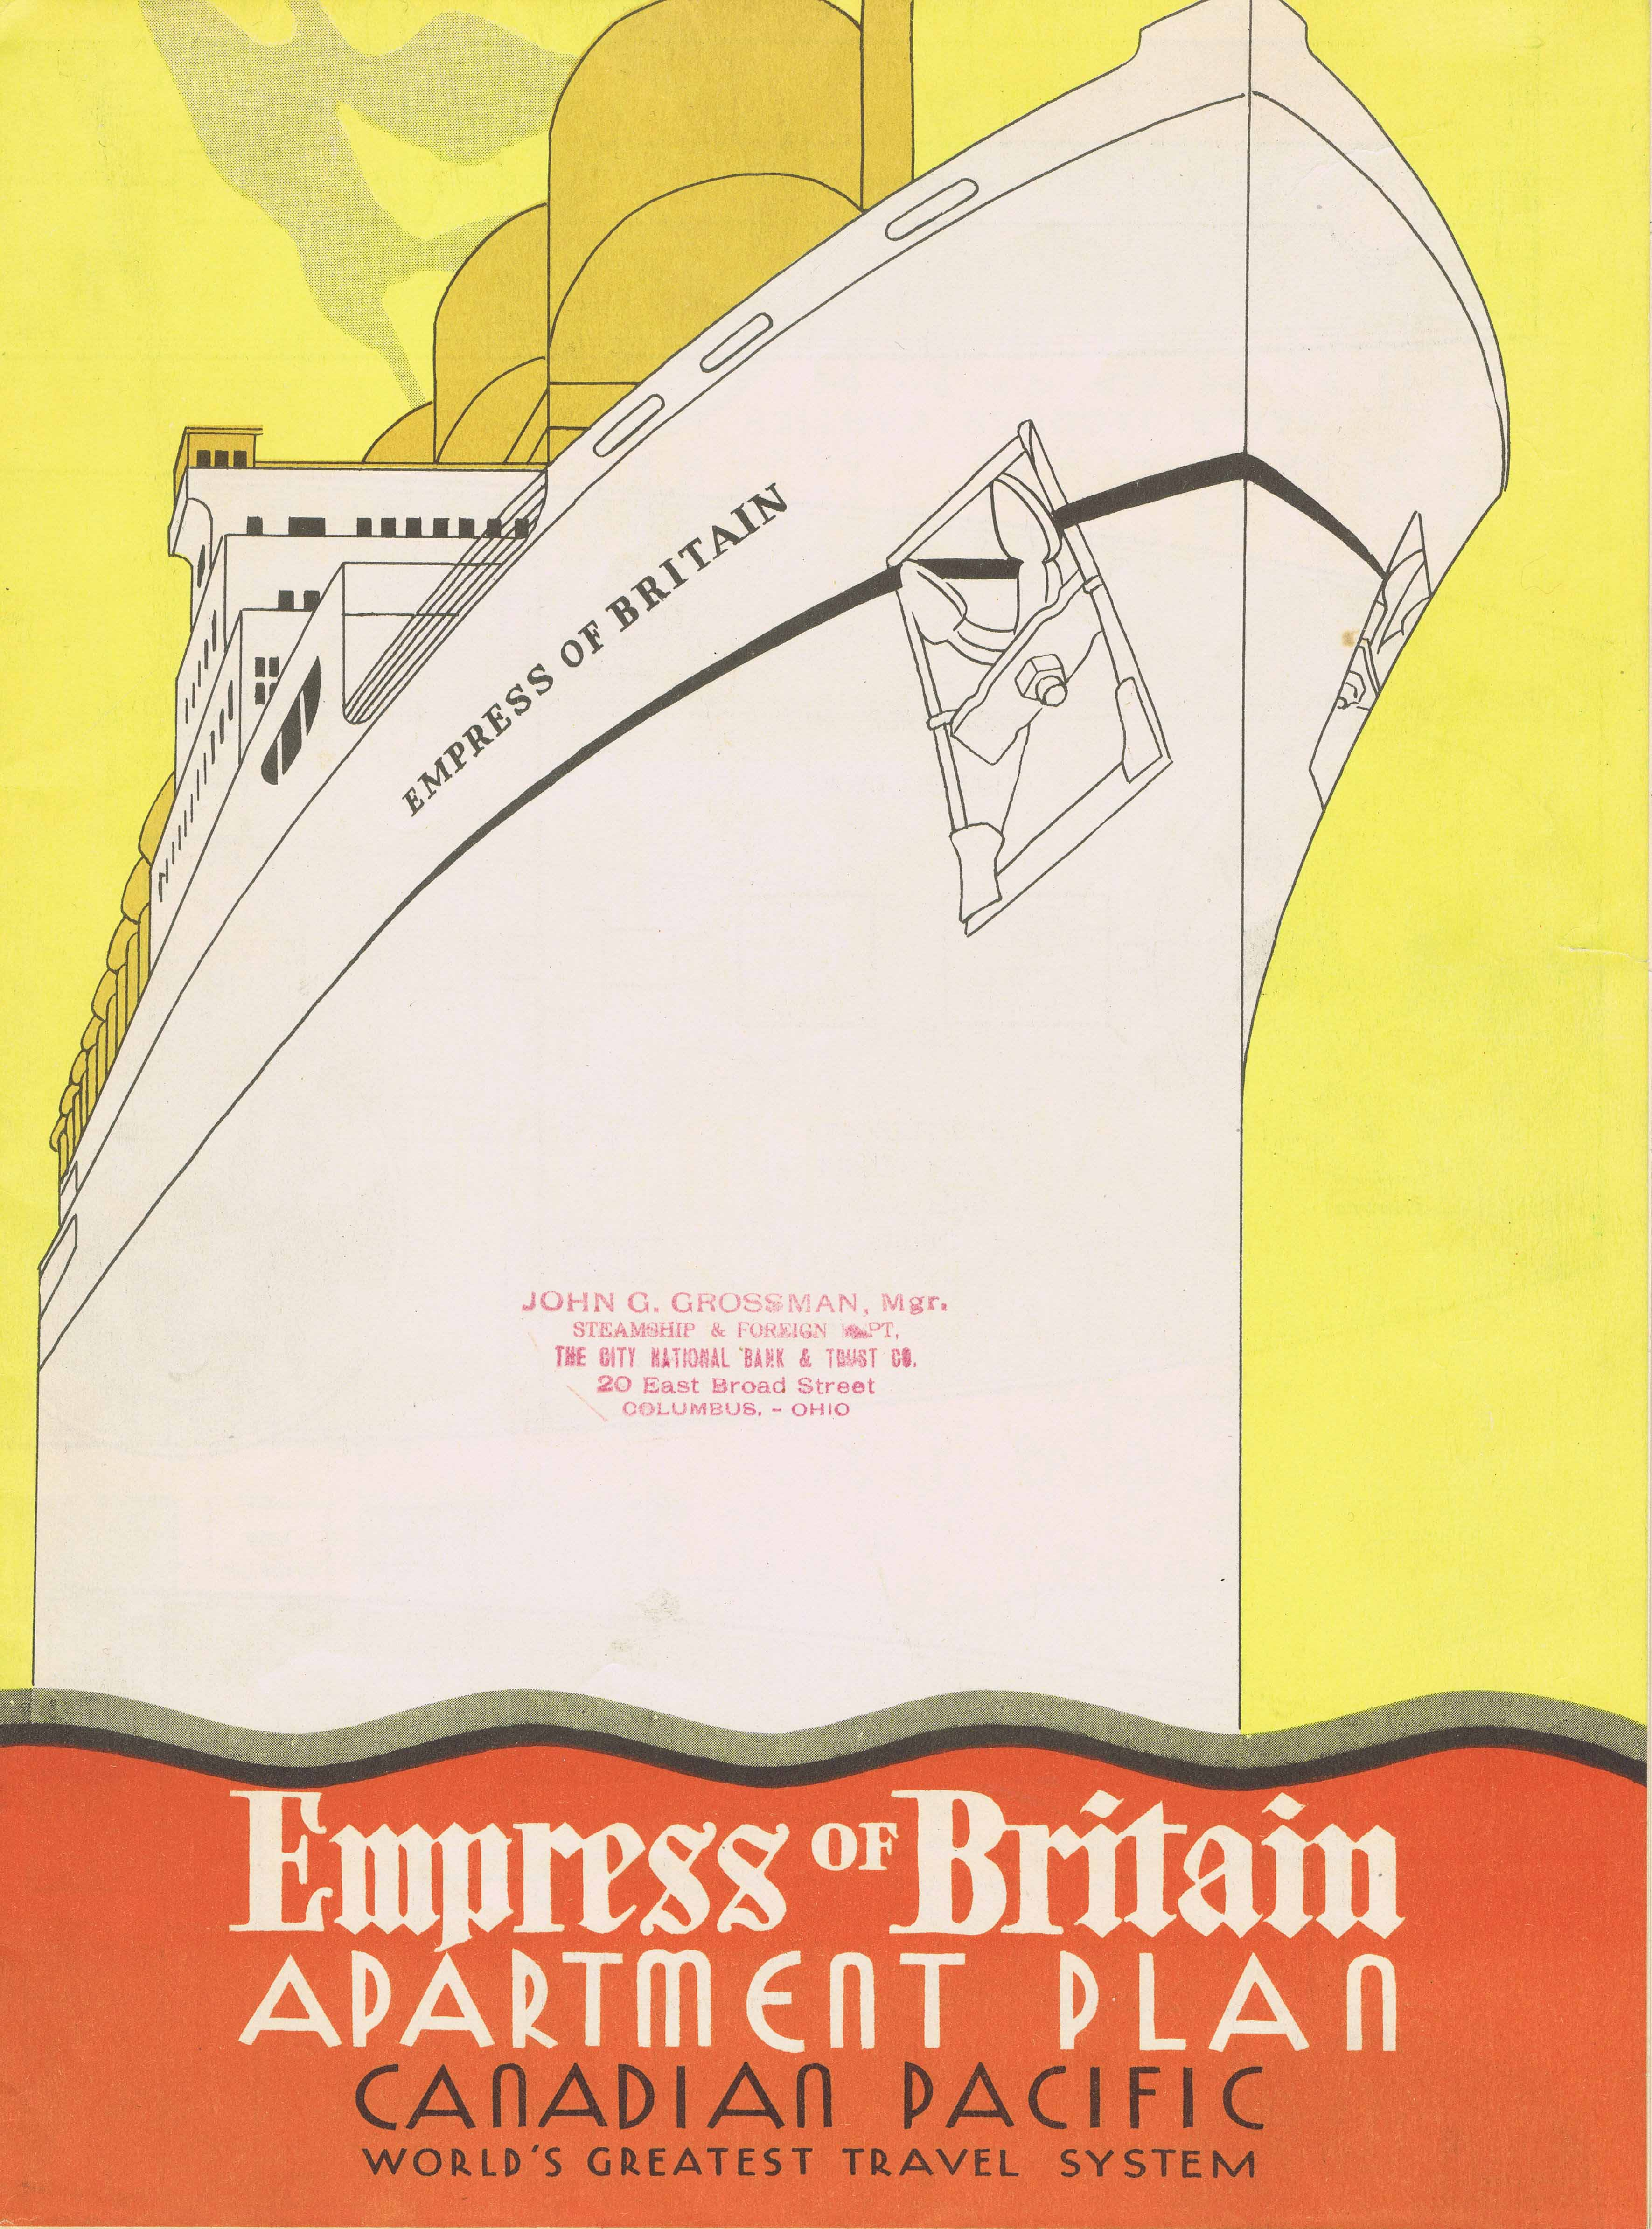 Empress of Britain brochure cover